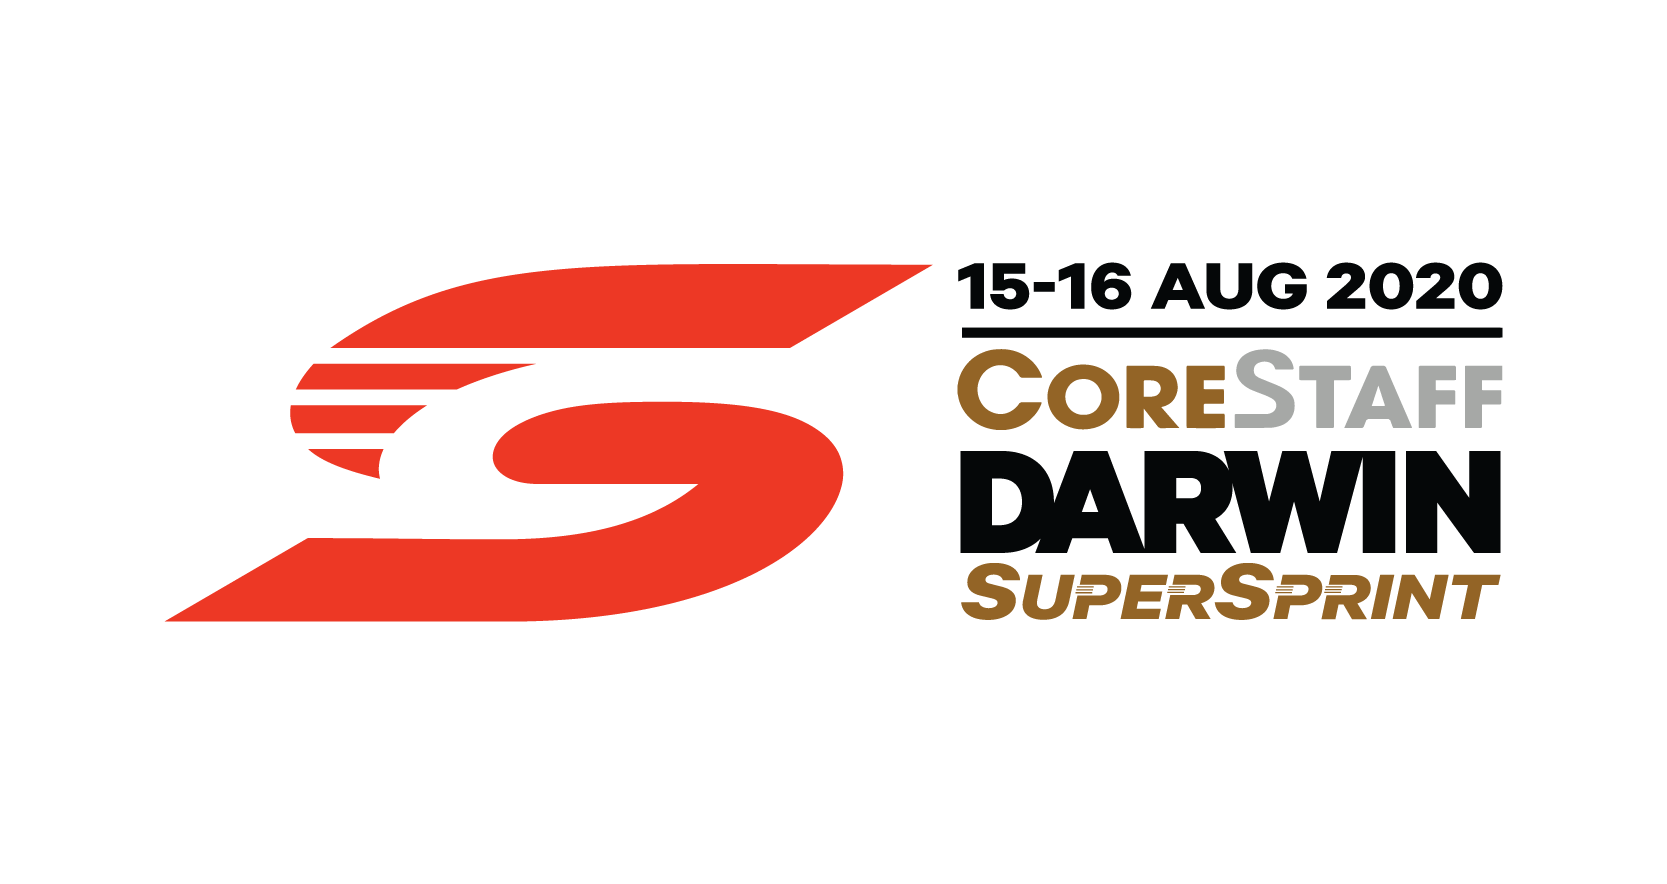 V8 Supercars - CoreStaff Darwin SuperSprint logo